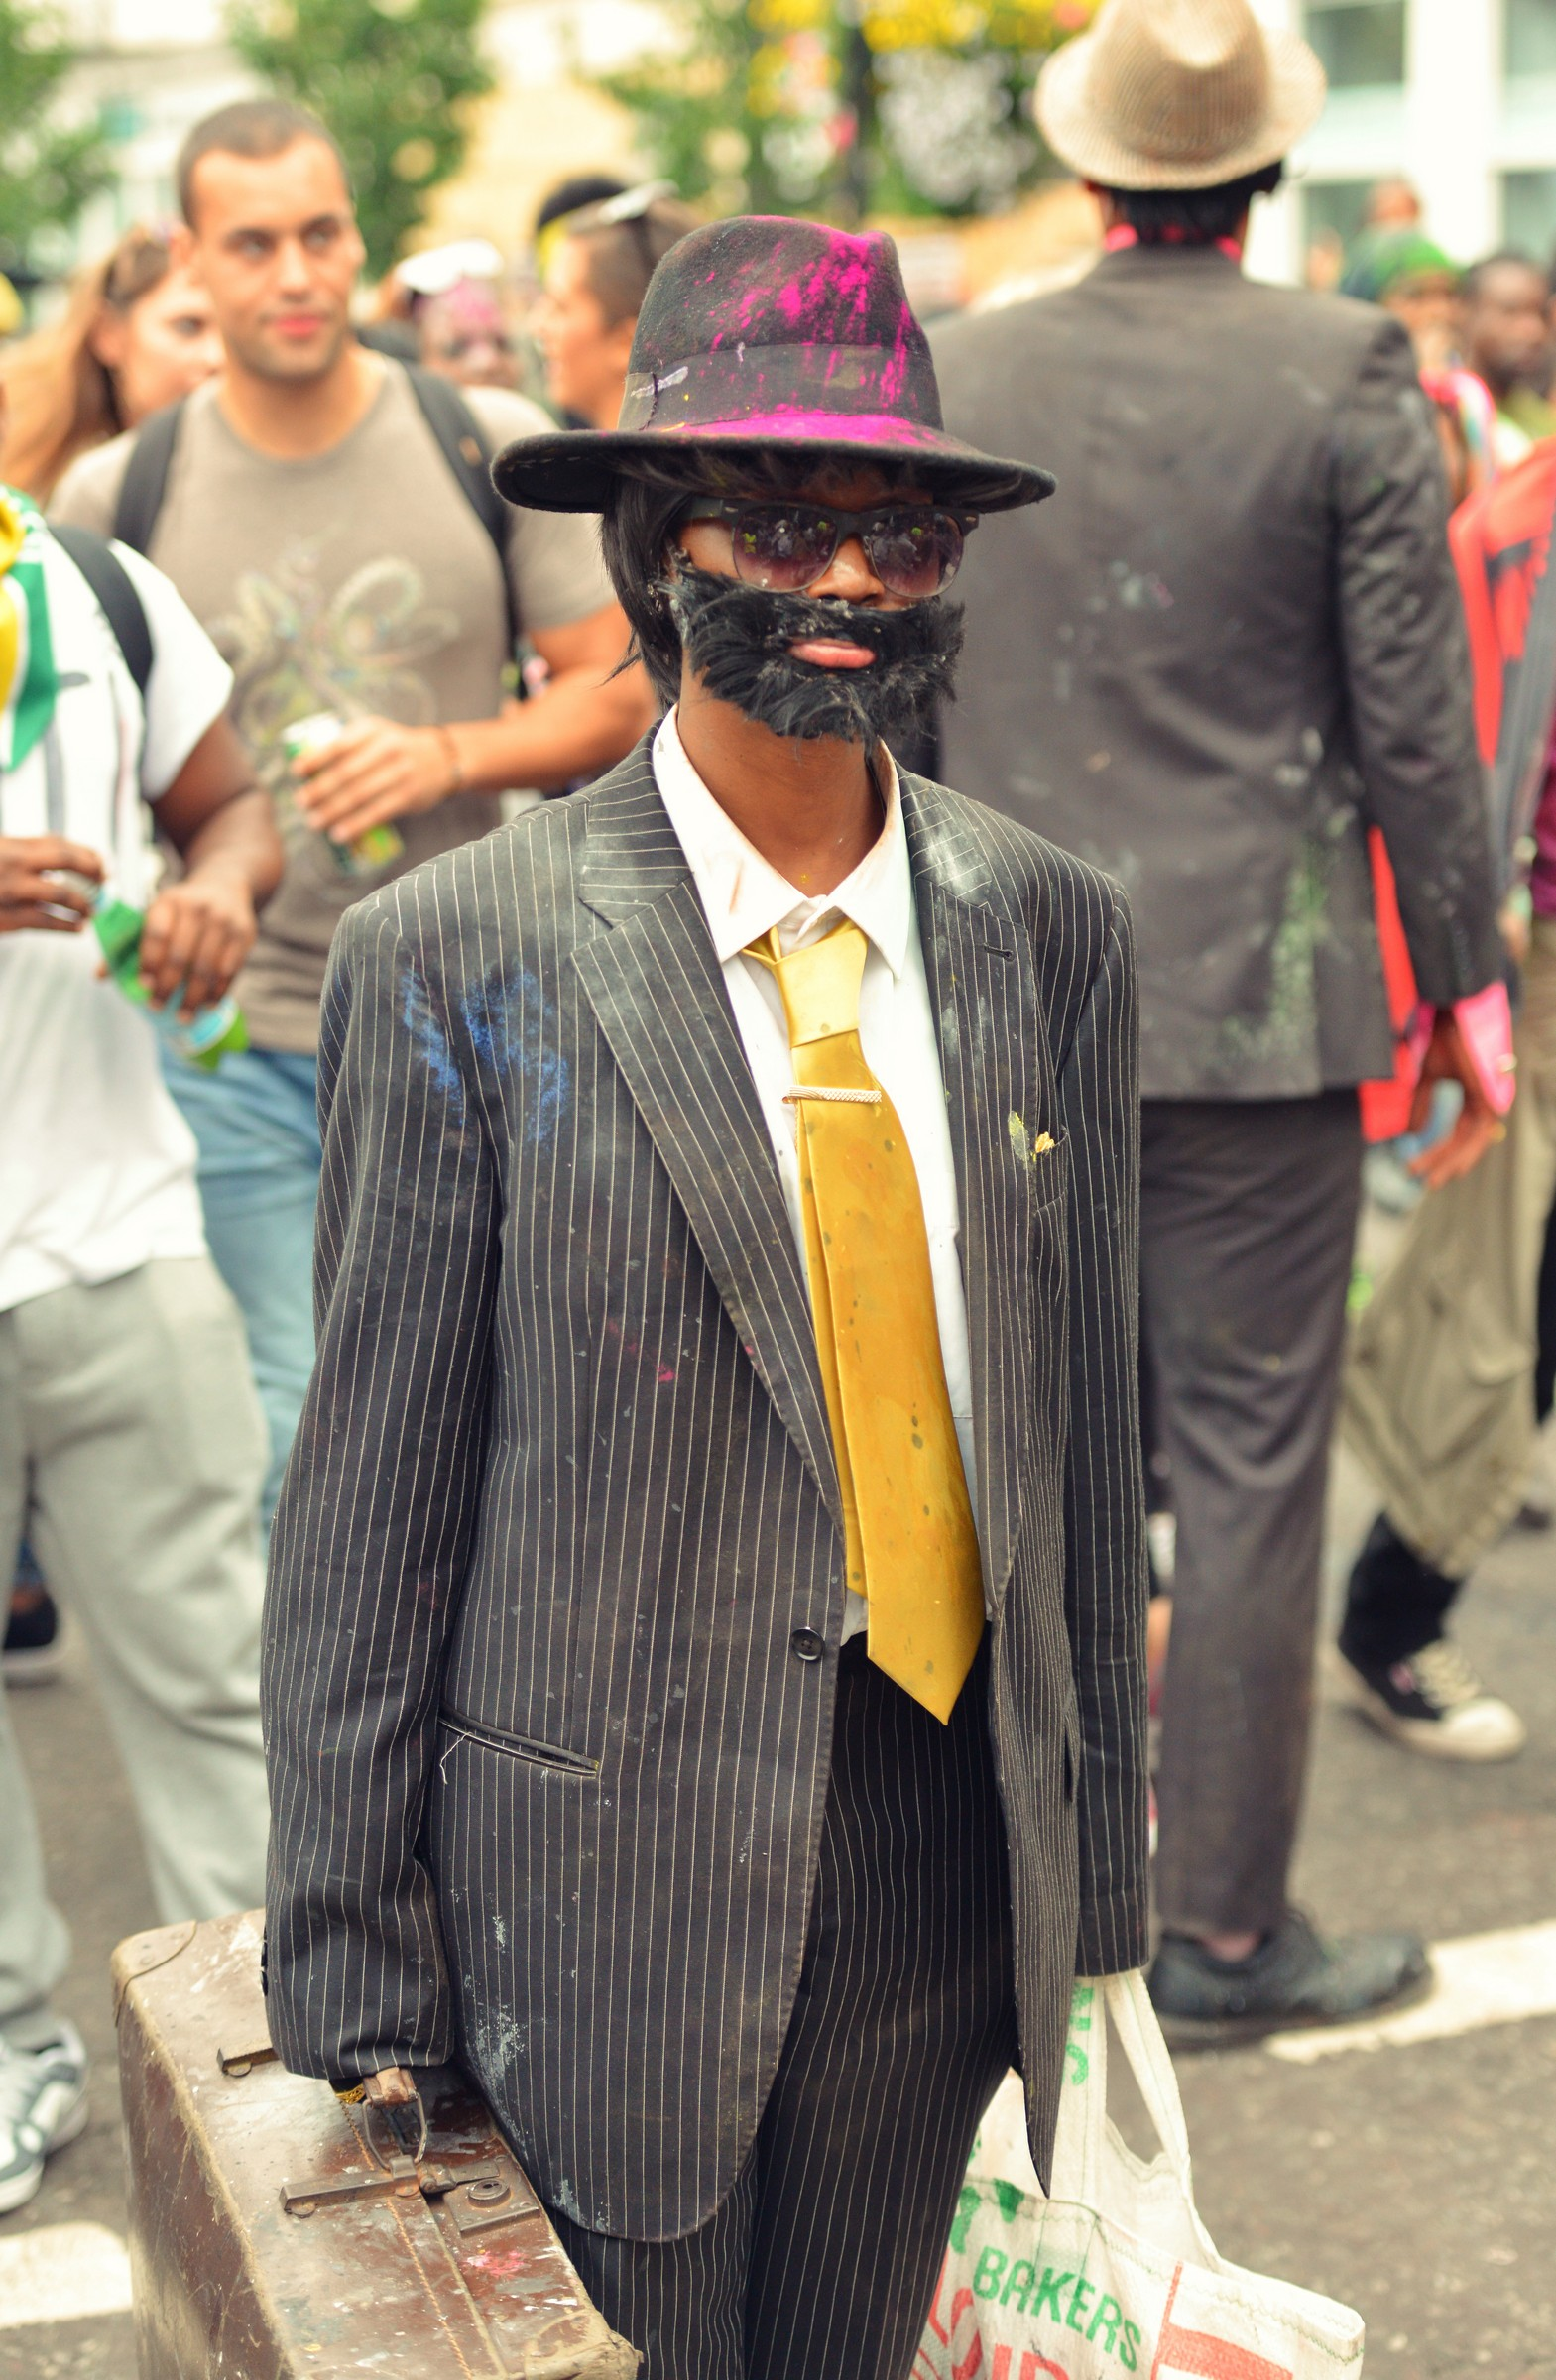 Fake moustache Notting Hill Carnival